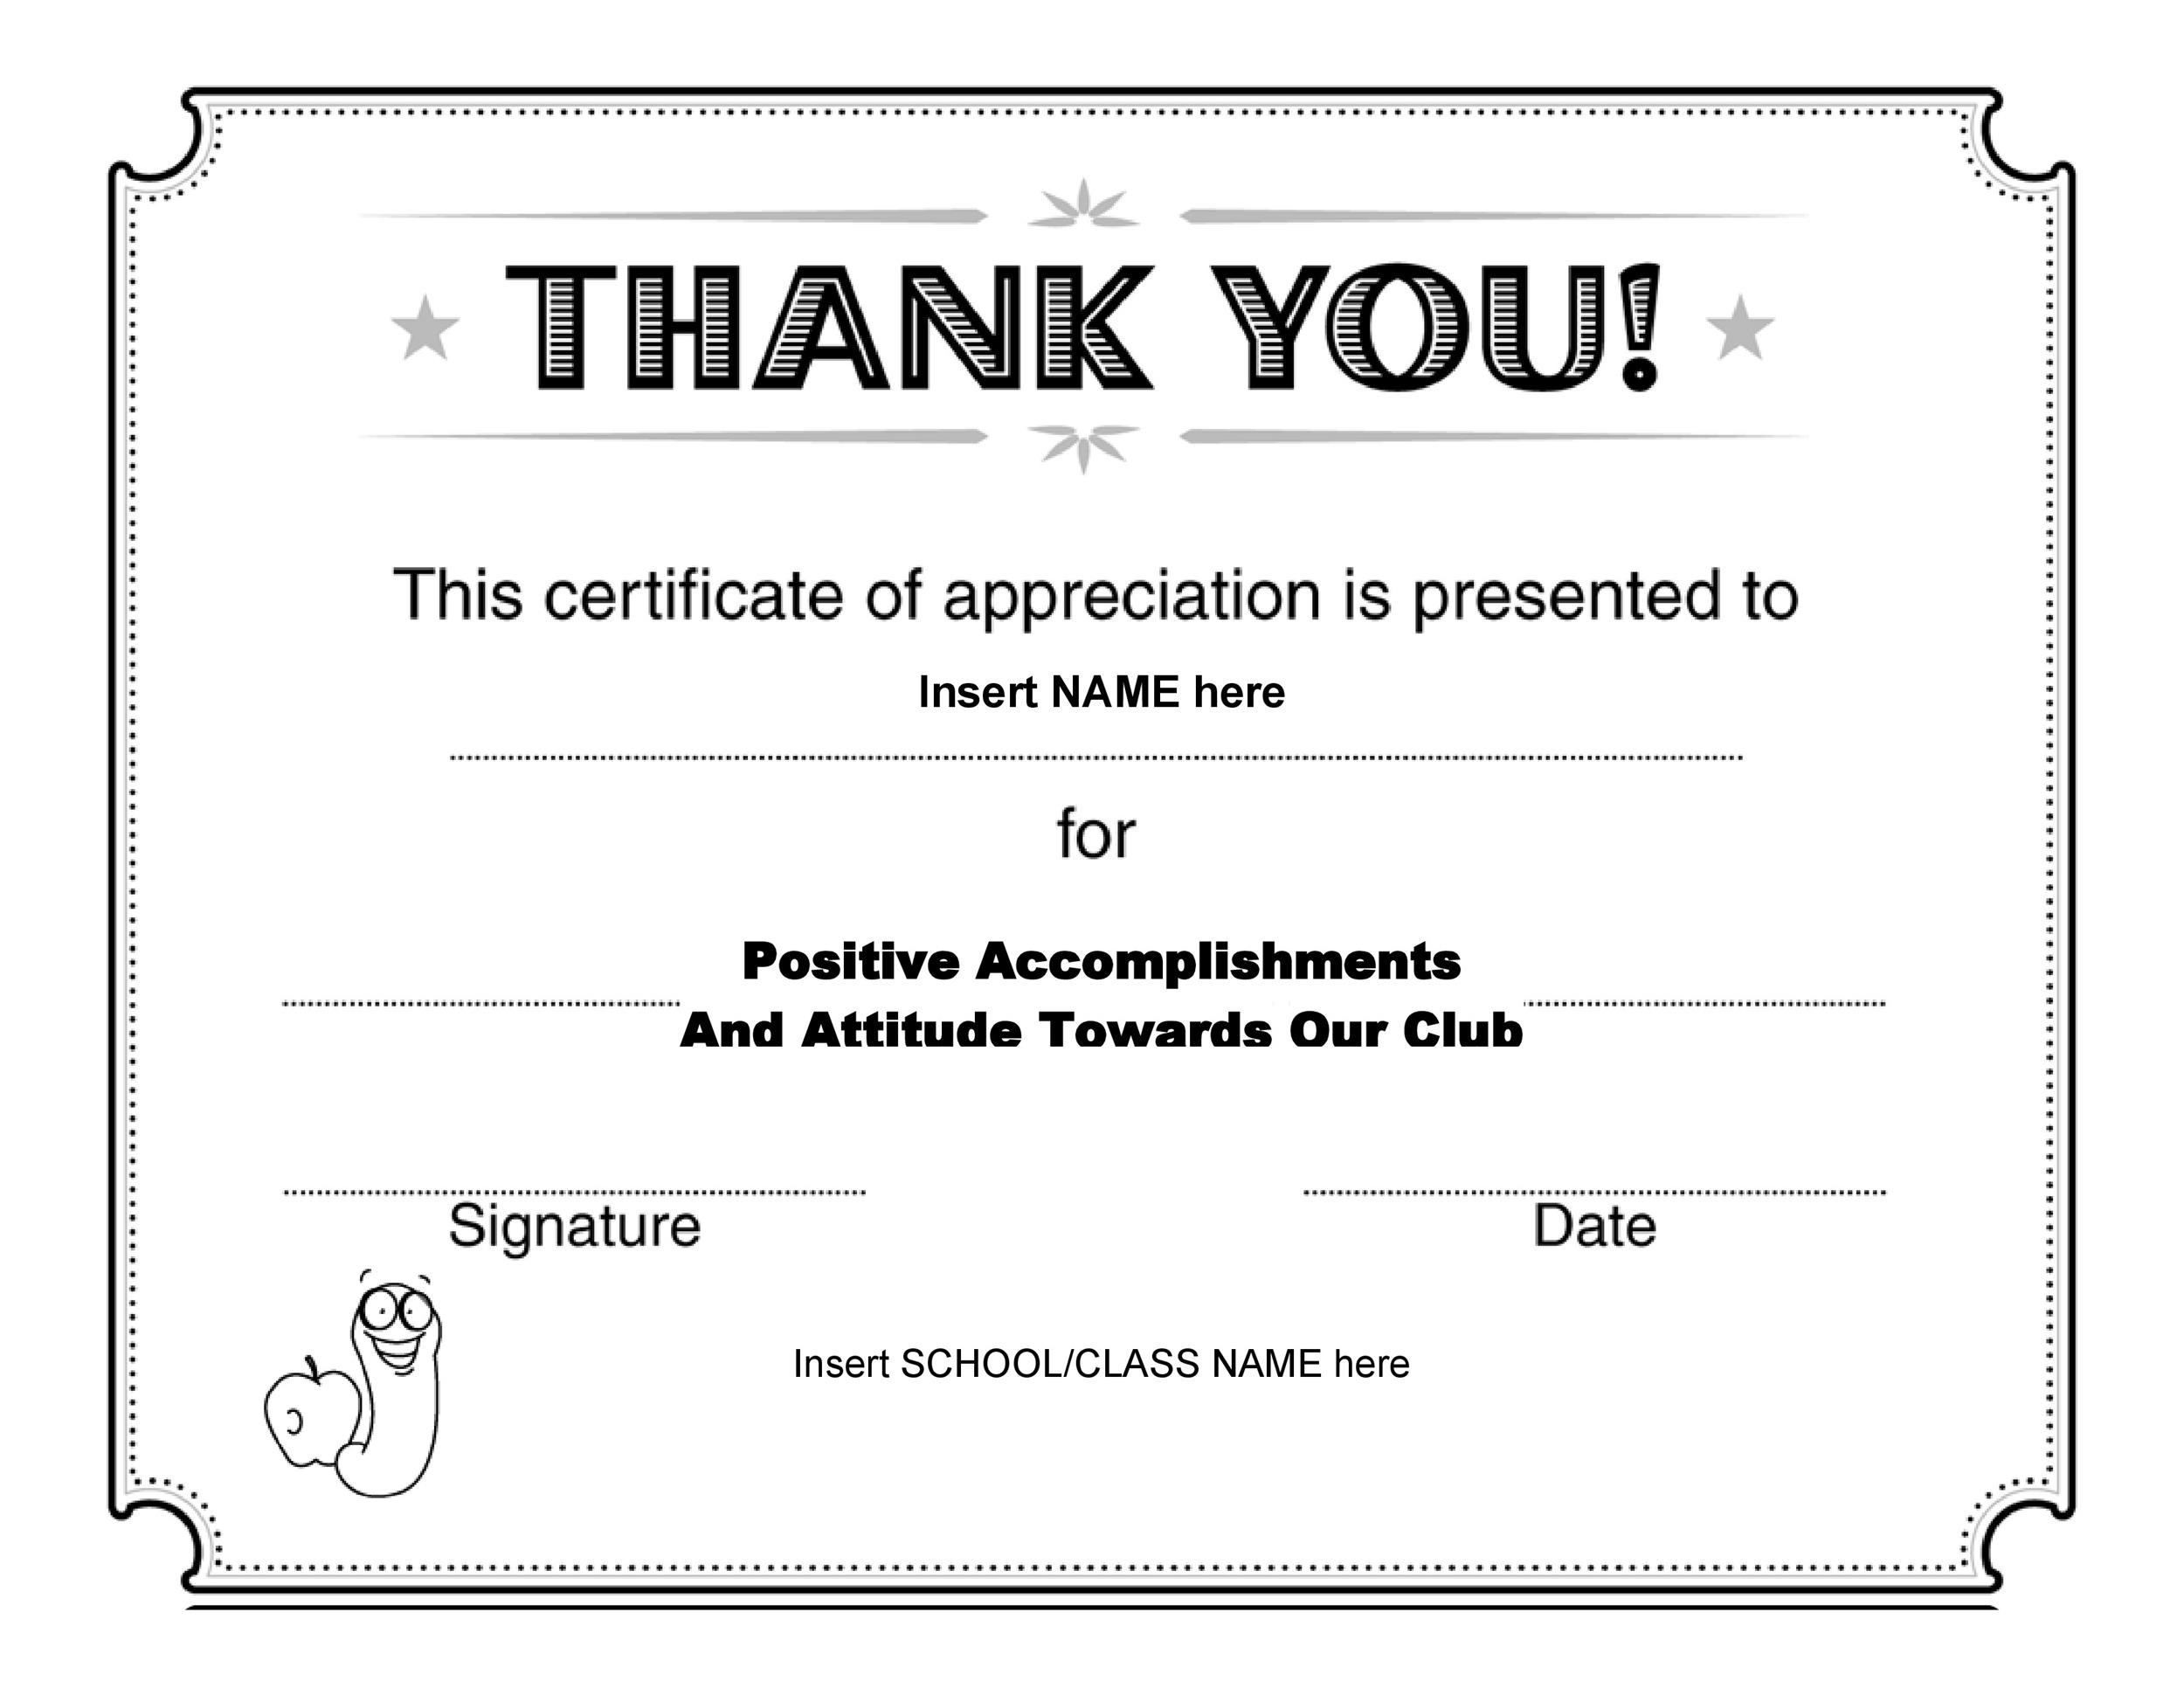 30 free certificate of appreciation templates and letters printable certificate of appreciation 07 icon download 15850 kb yadclub